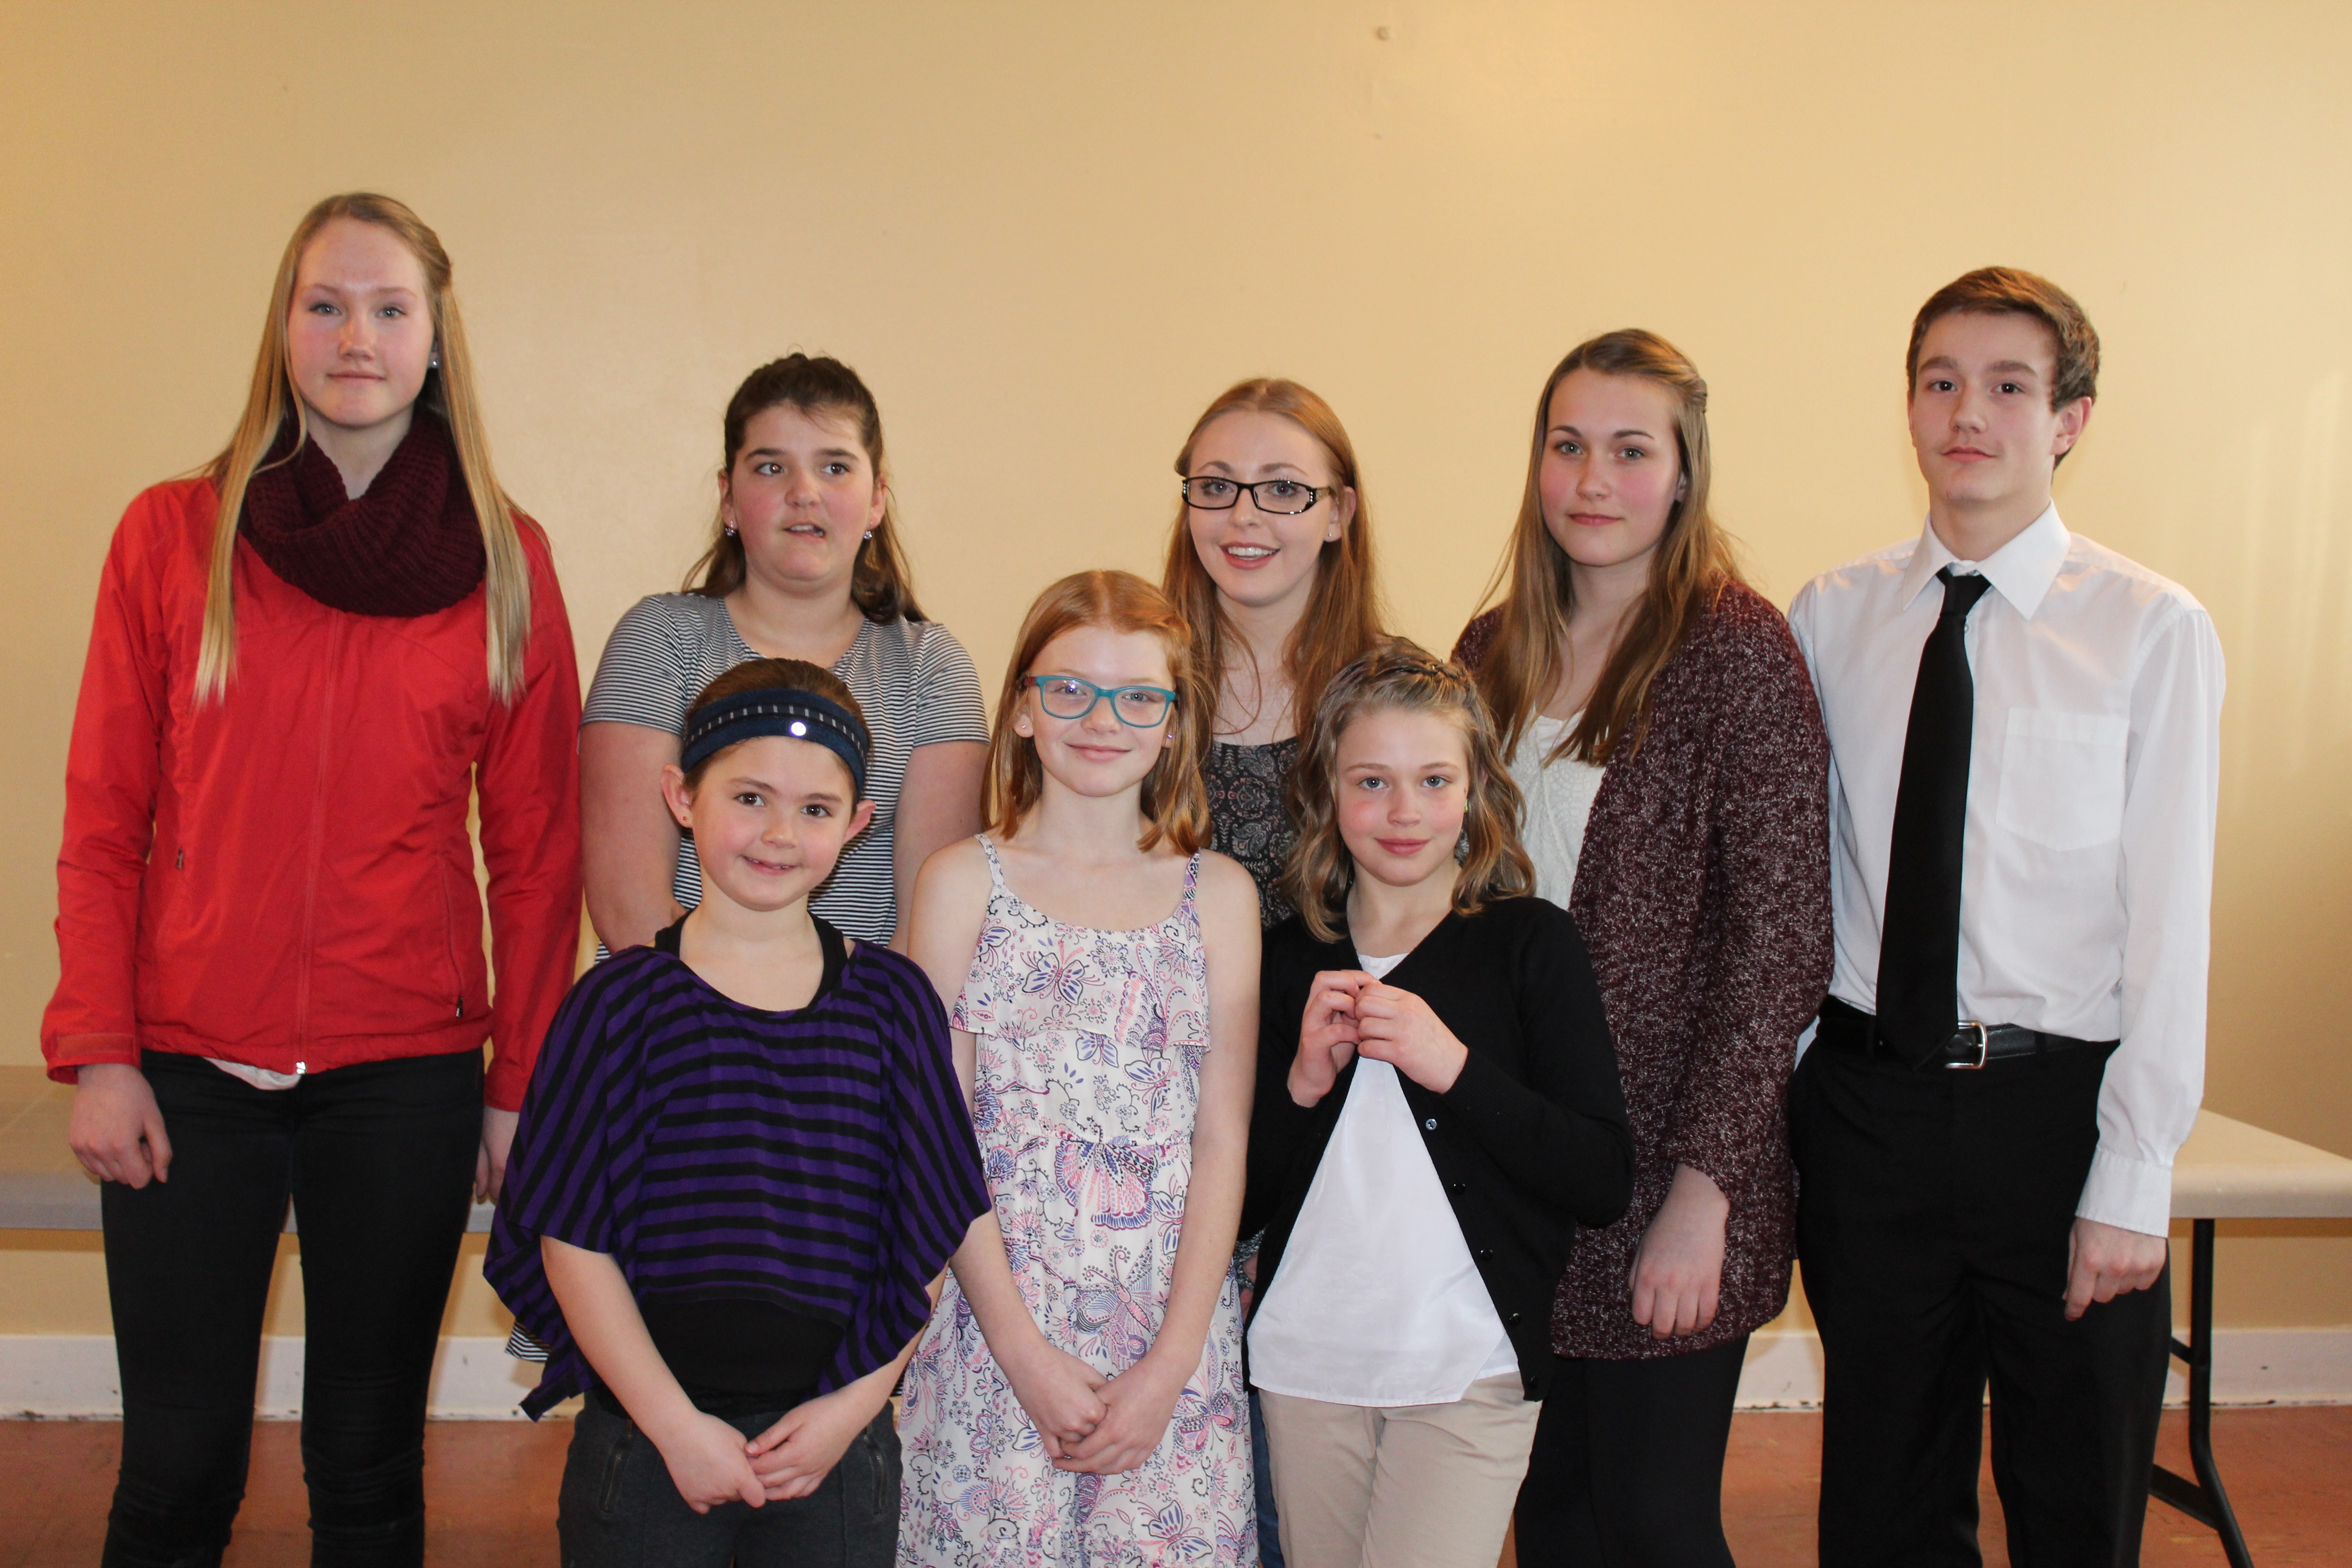 All the winners of the North Parkland 4-H area speeches. Photo credit: Gale Brunen